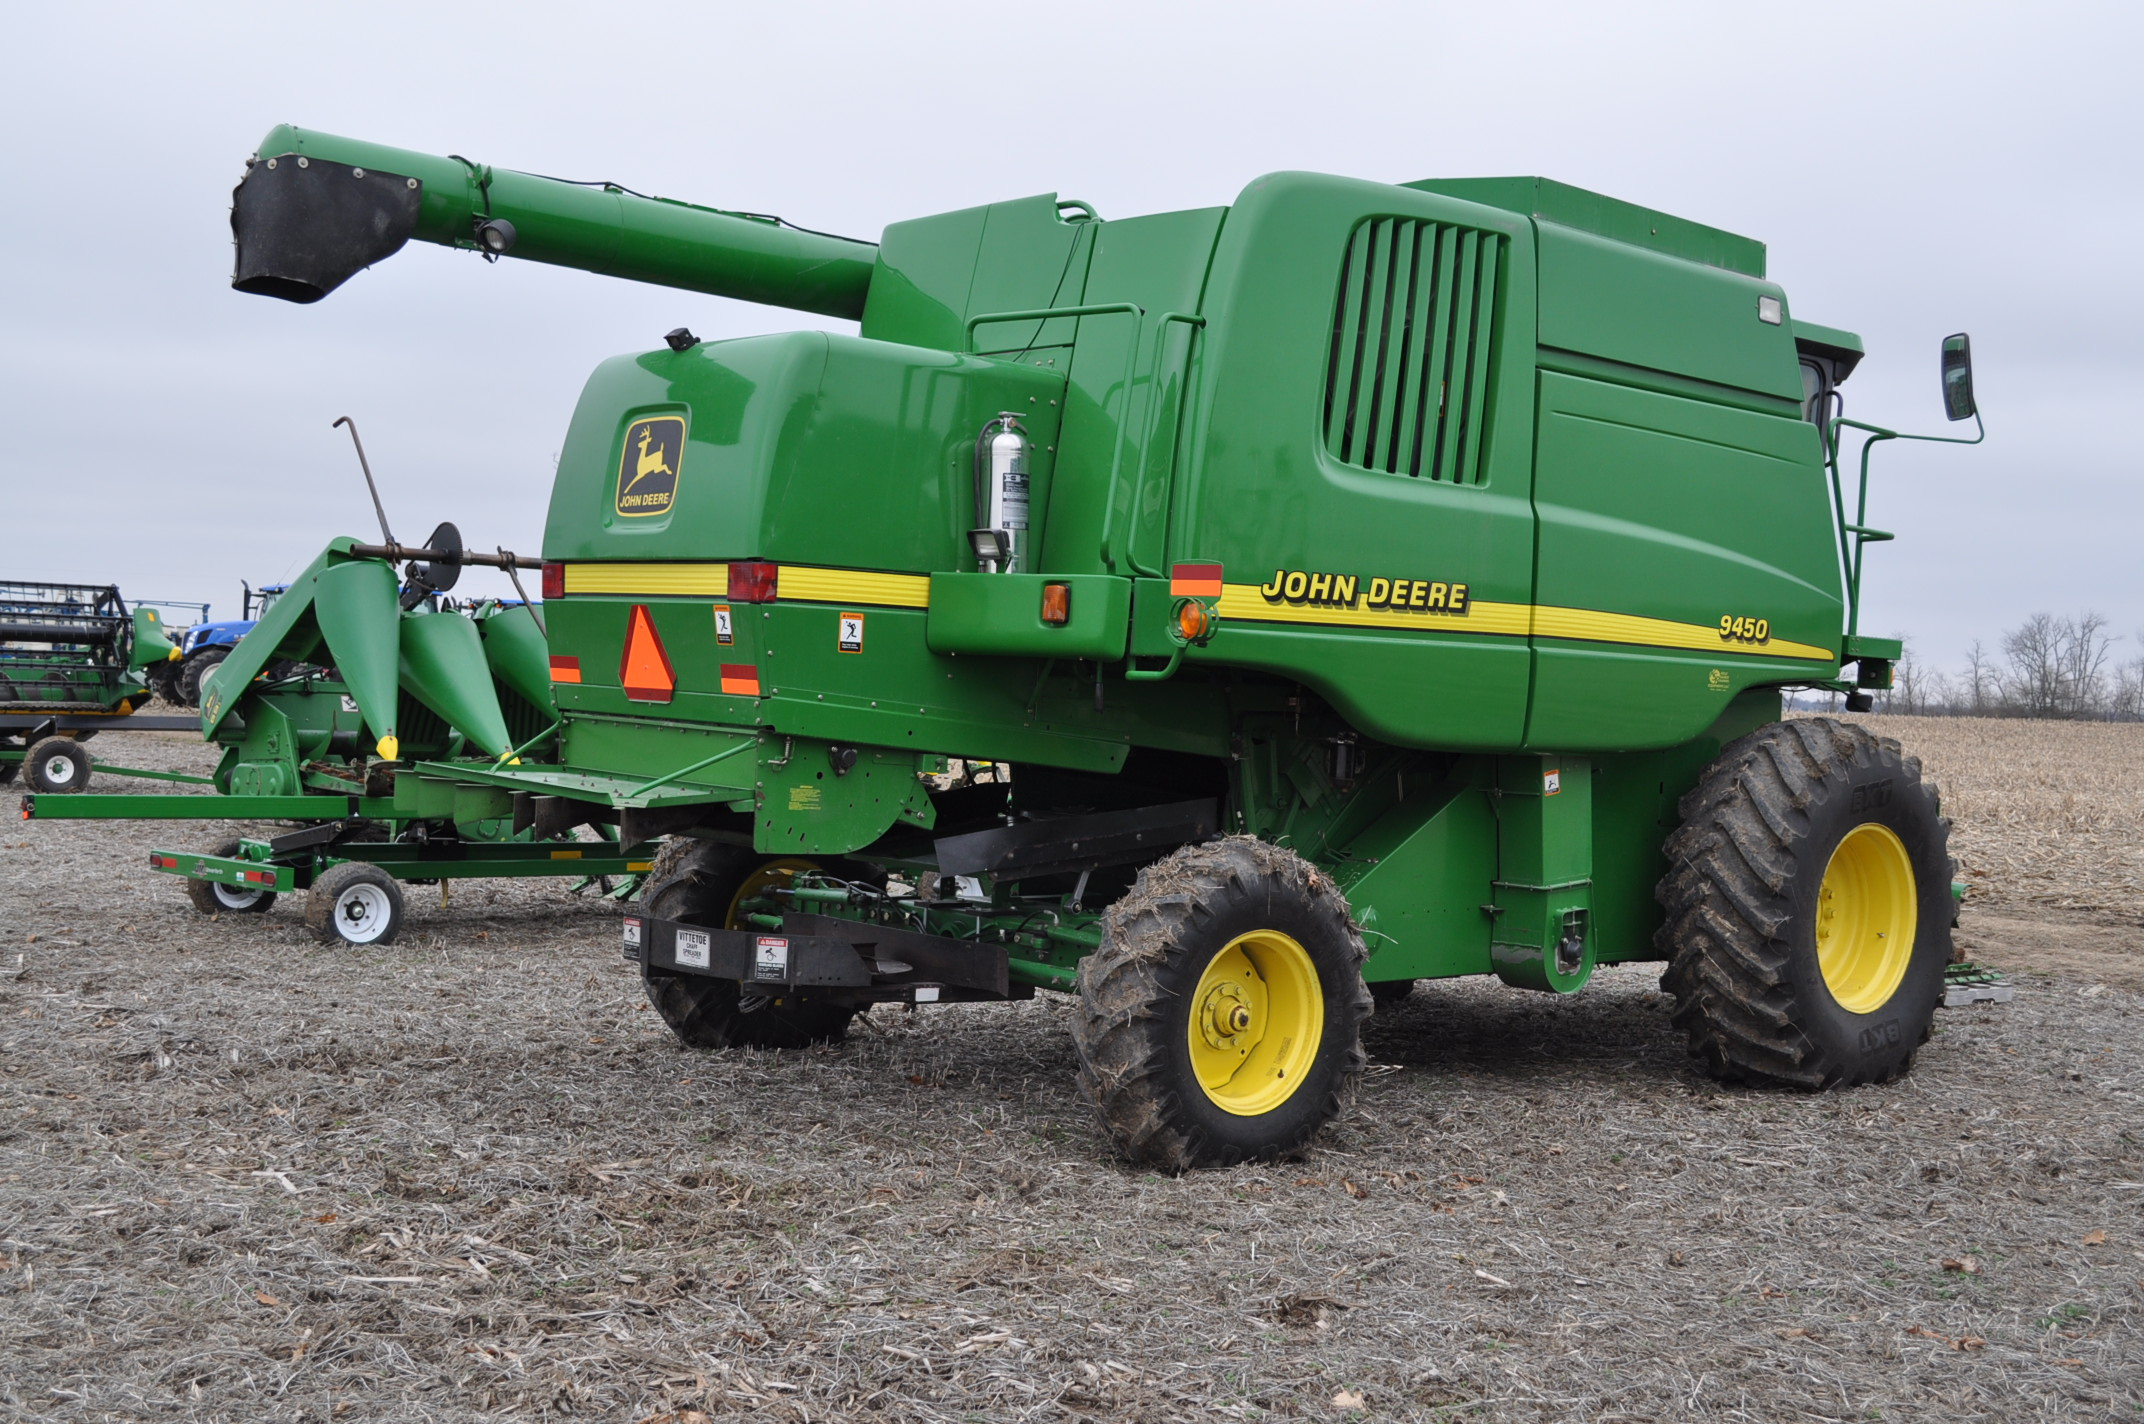 John Deere 9450 combine, NEW 24.5-32 drive, NEW 14.9-24 rear, chopper, spreader, 3335 engine hrs, - Image 3 of 18